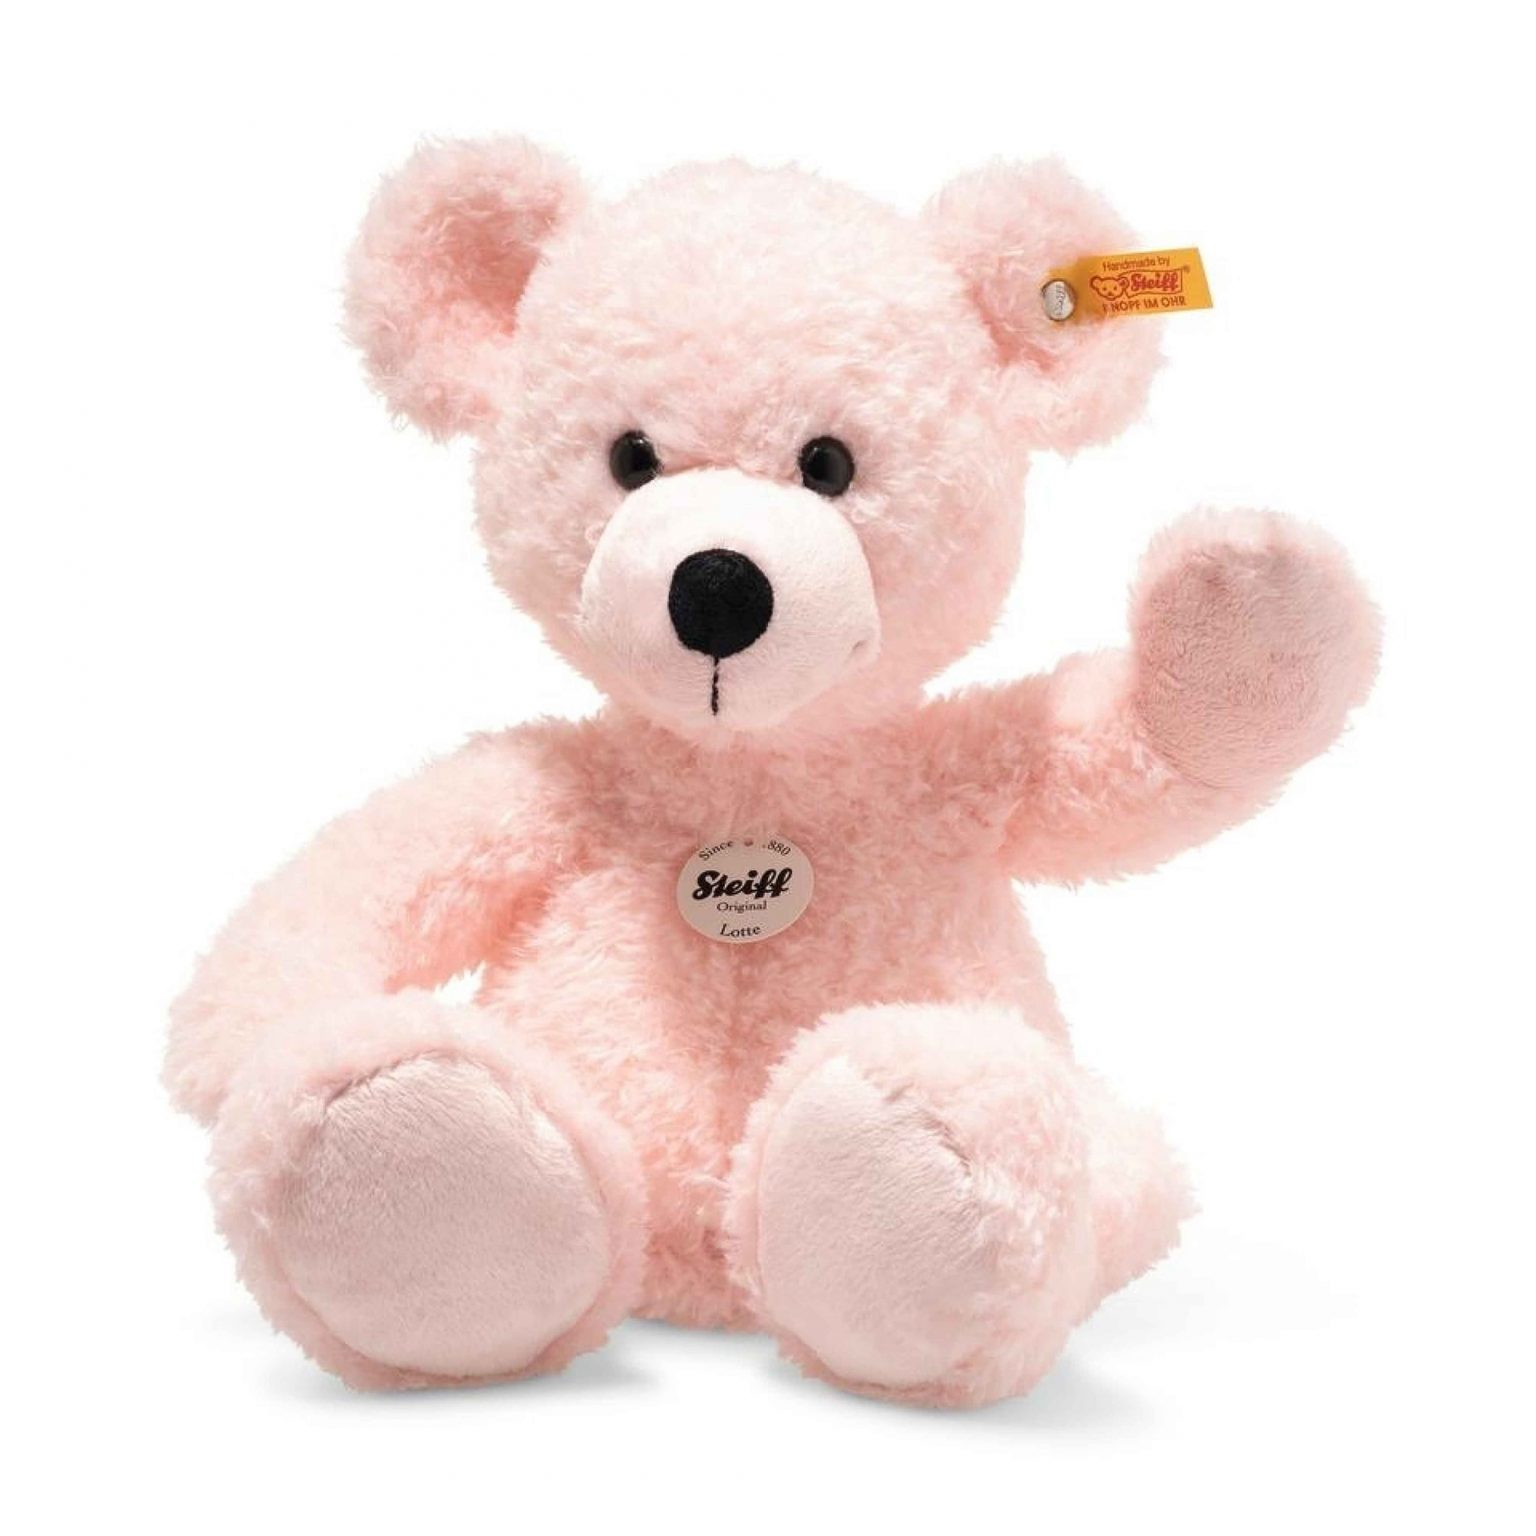 Lotte Pink Steiff Teddy Bear Mary Shortle